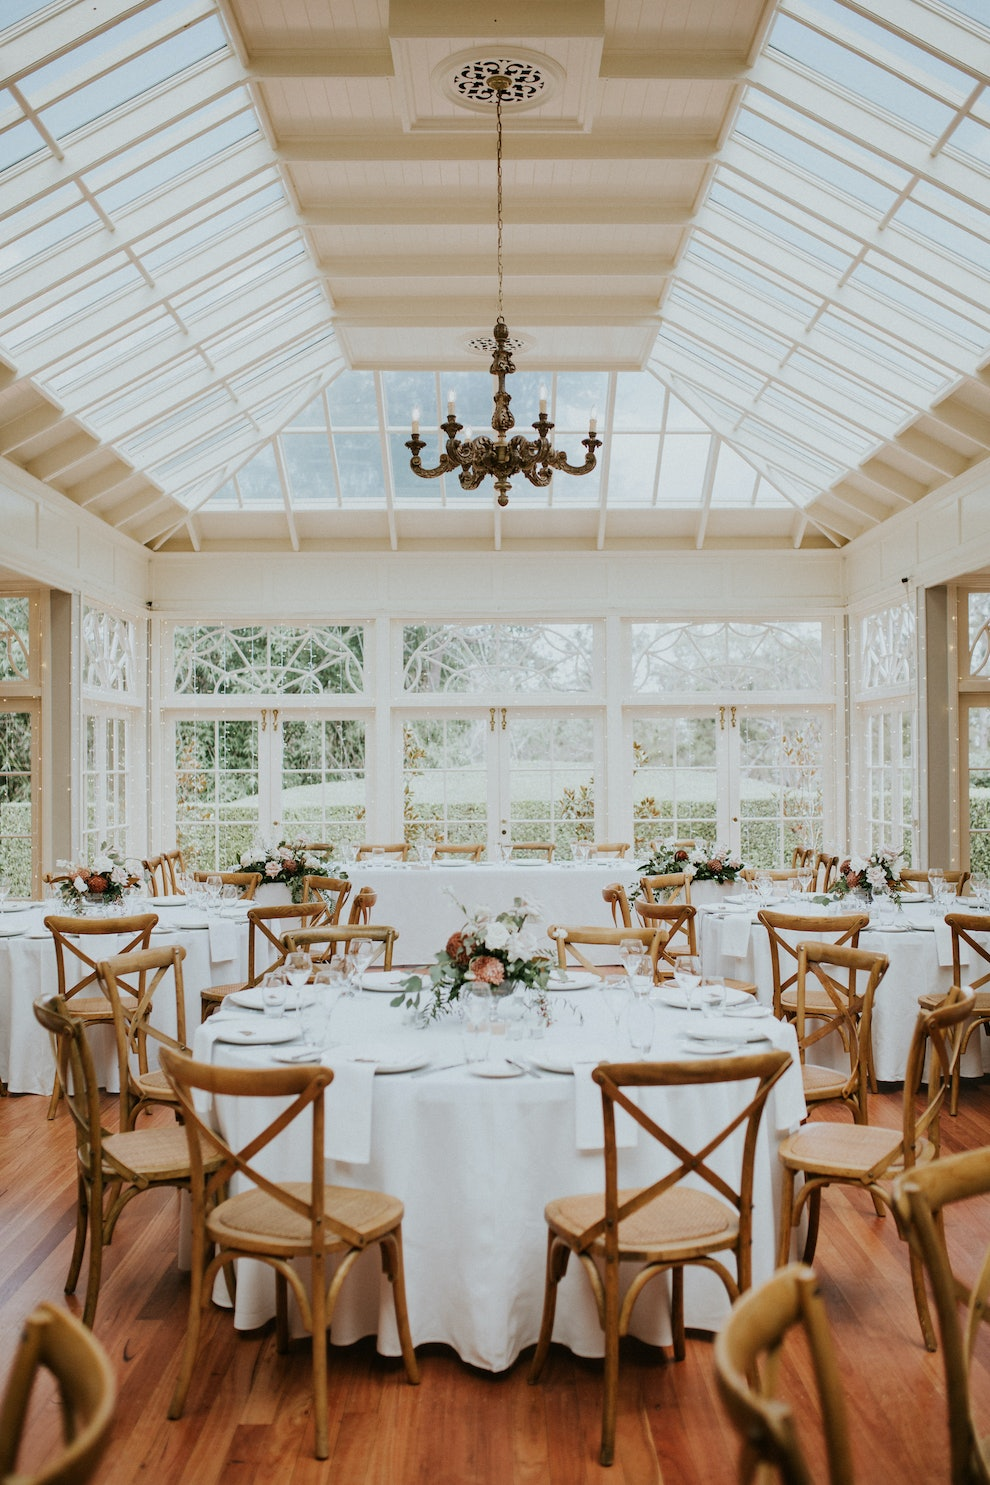 Wedding reception with round tables and wooden chairs